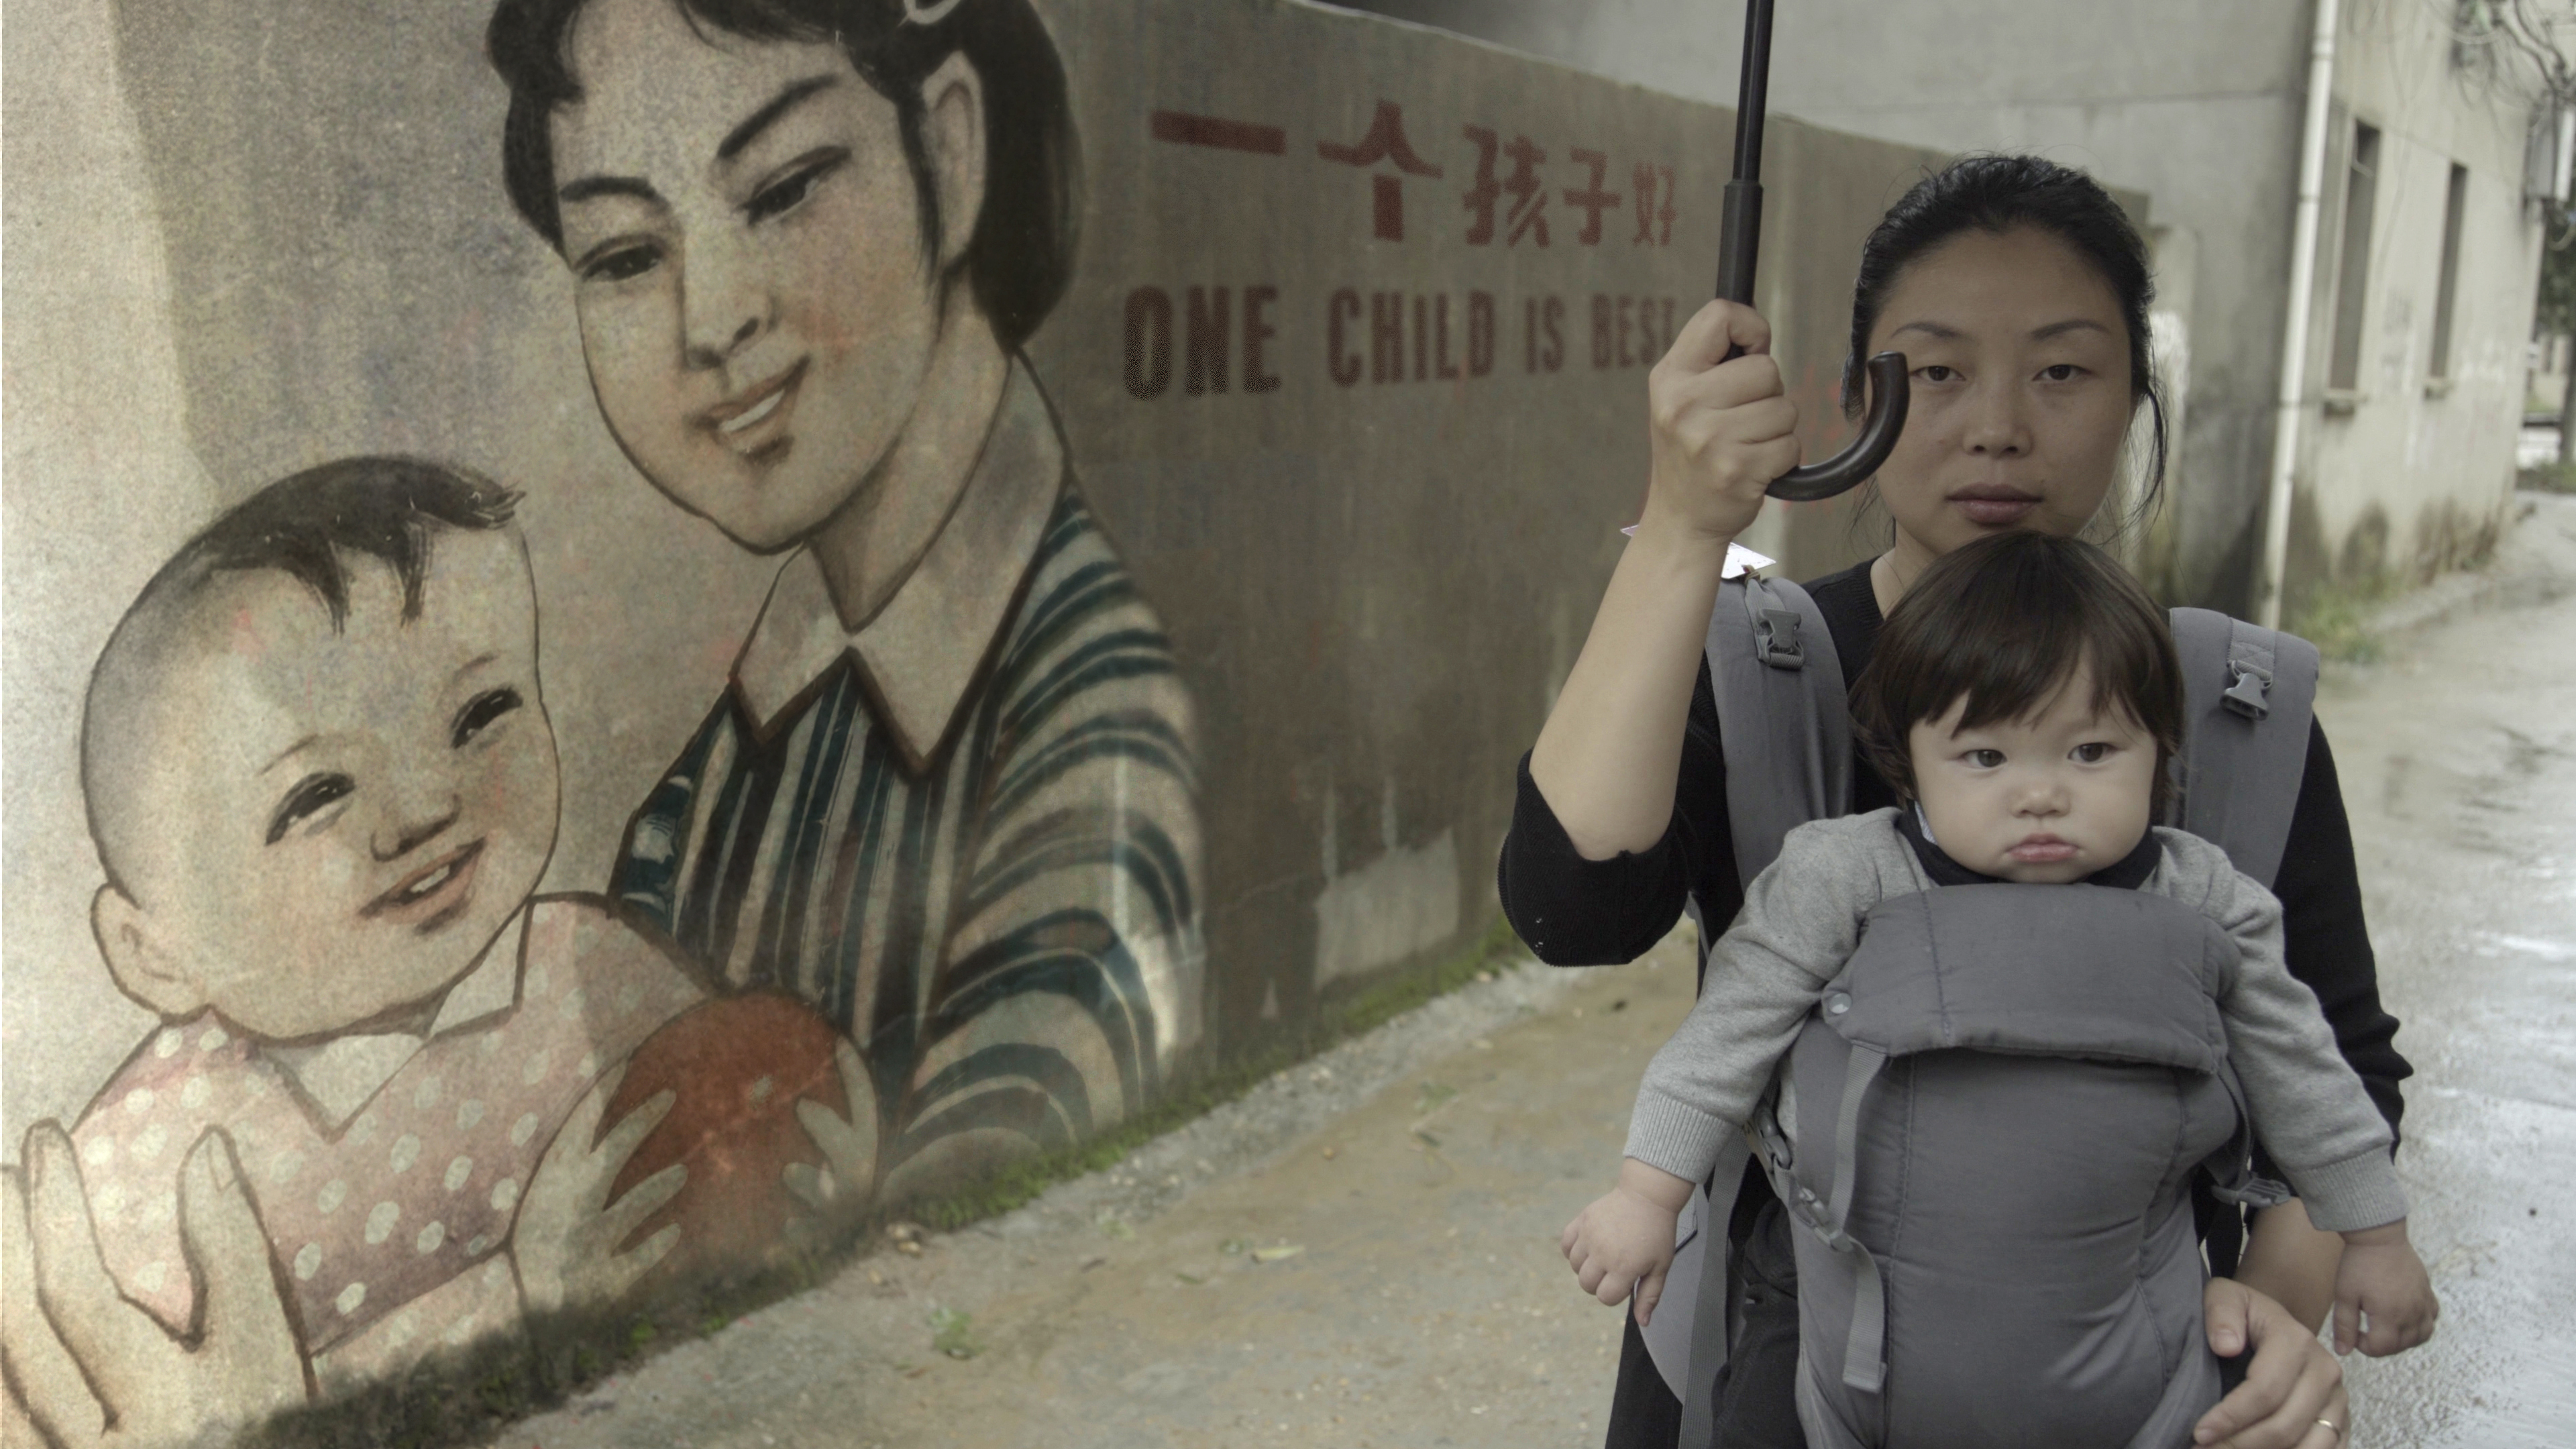 """A still from """"One Child Nation,"""" by Jialing Zhang and Nanfu Wang, an official selection of the U.S. Documentary Competition an at the 2019 Sundance Film Festival."""